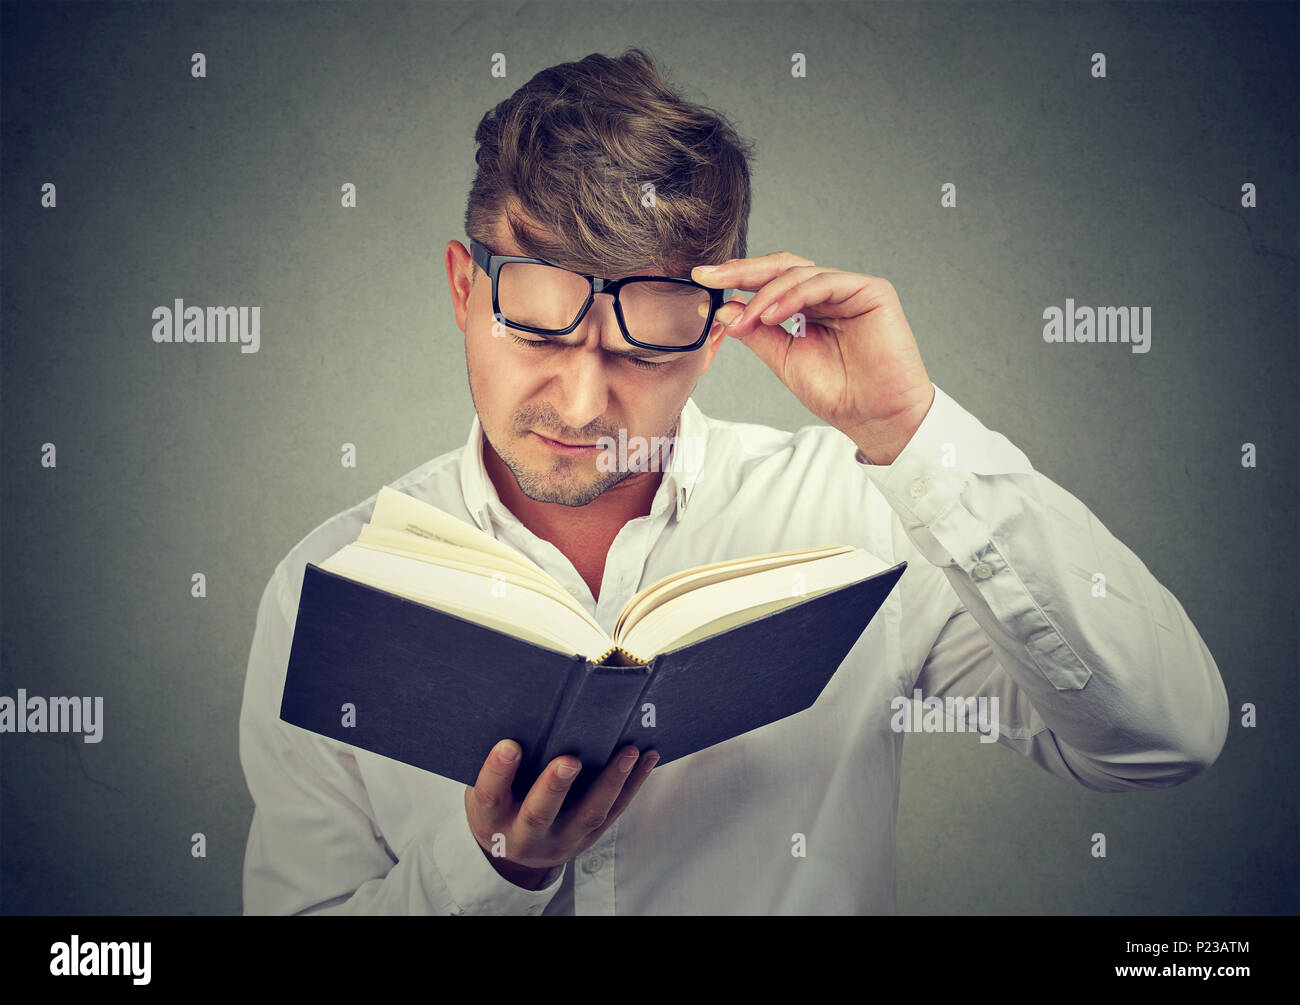 Young man frowning eyebrows while lifting eyeglasses and trying to read book on gray background. - Stock Image